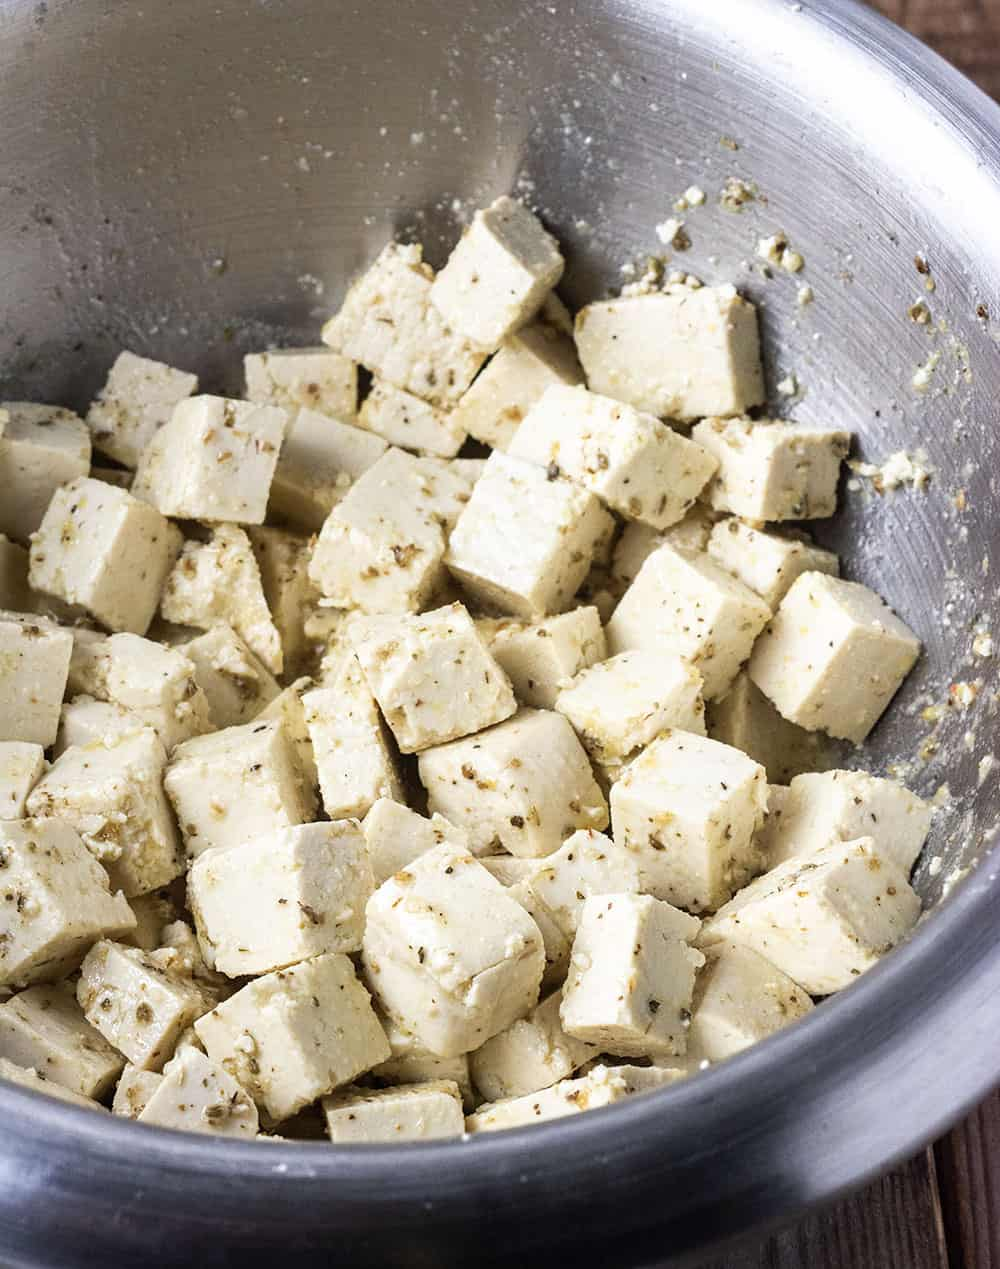 seasoned tofu cubes for vegan feta cheese in a silver bowl